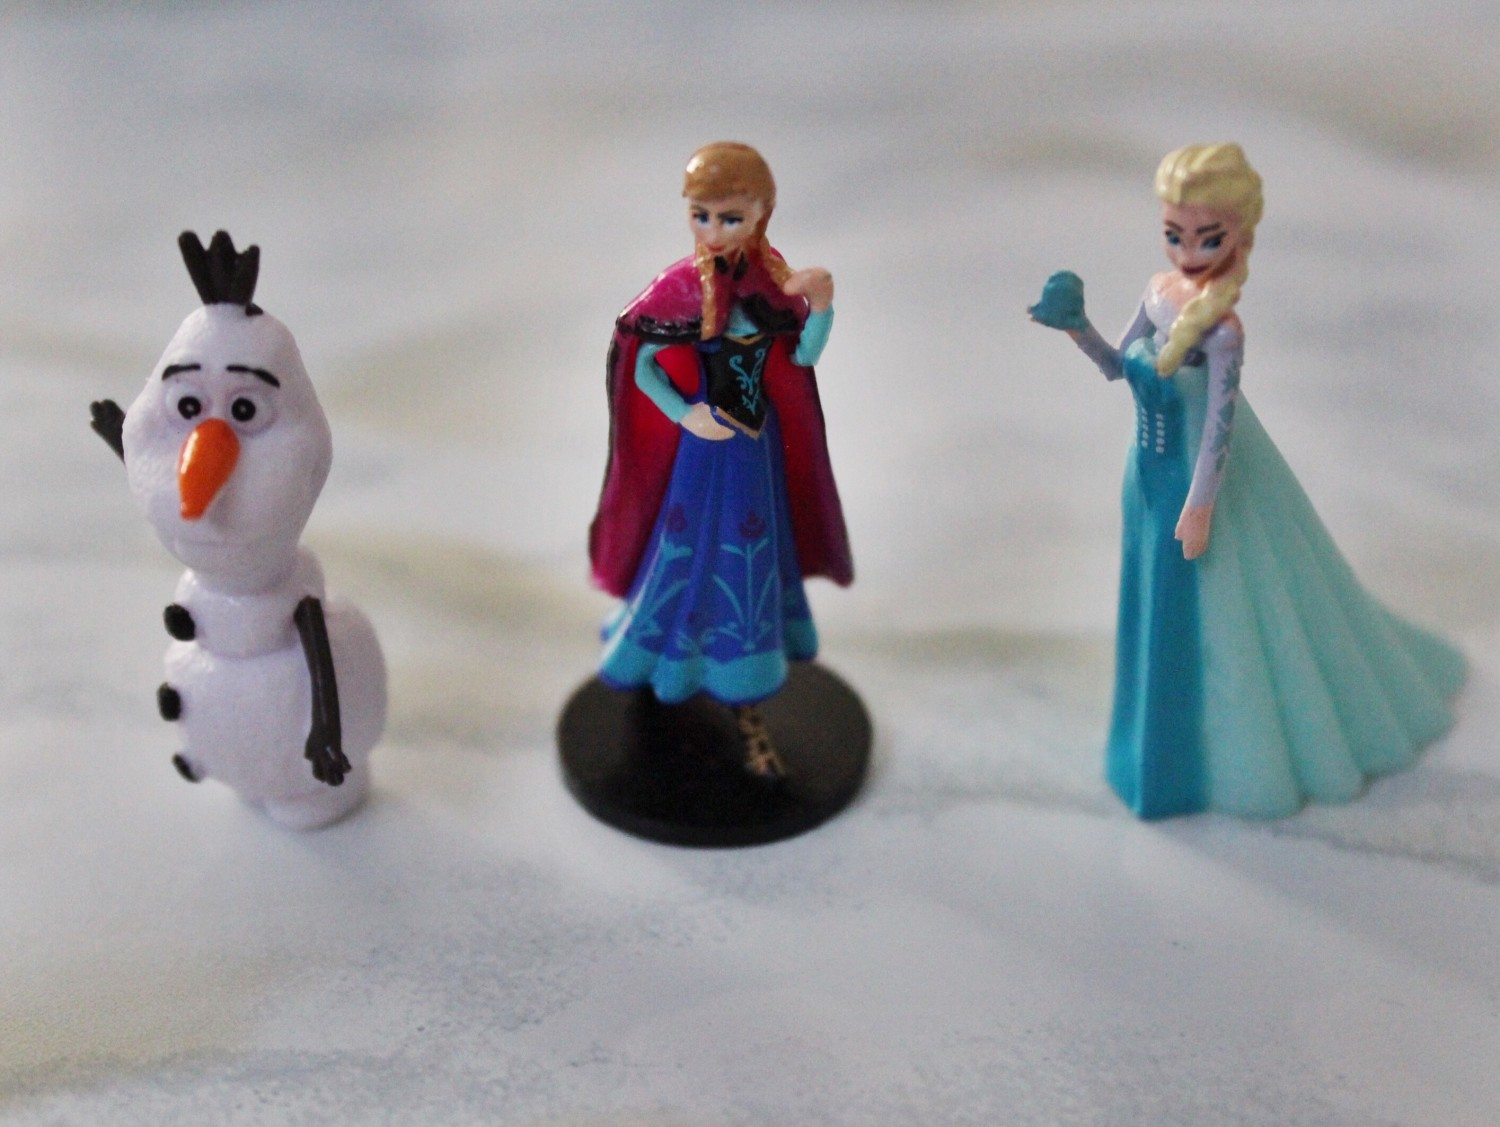 Frozen Surprise Egg toy